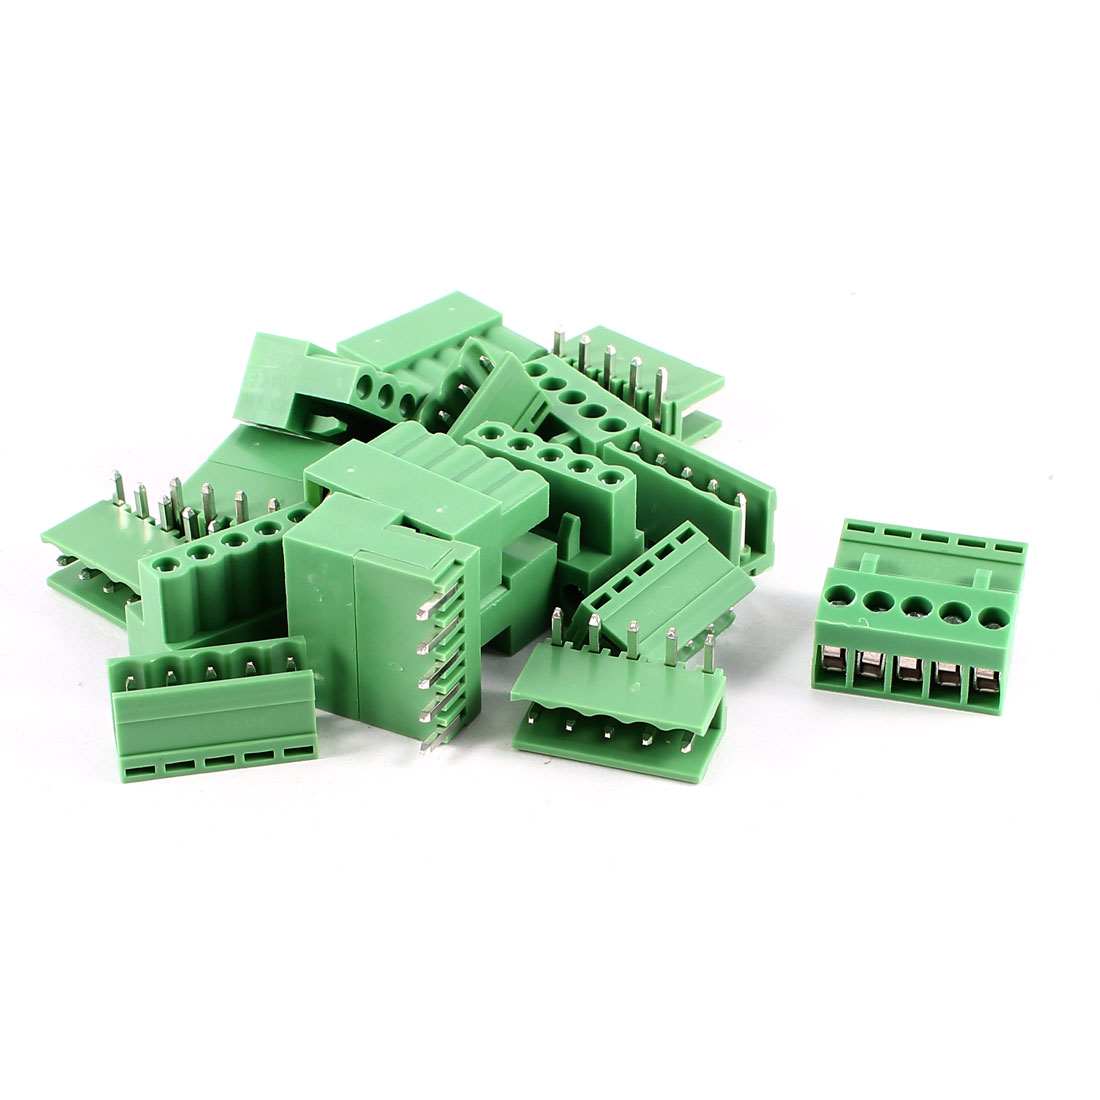 10 Pcs 5Pin 3.96mm Spacing PCB Screw Terminal Block Connector 300V 10A AWG14-26